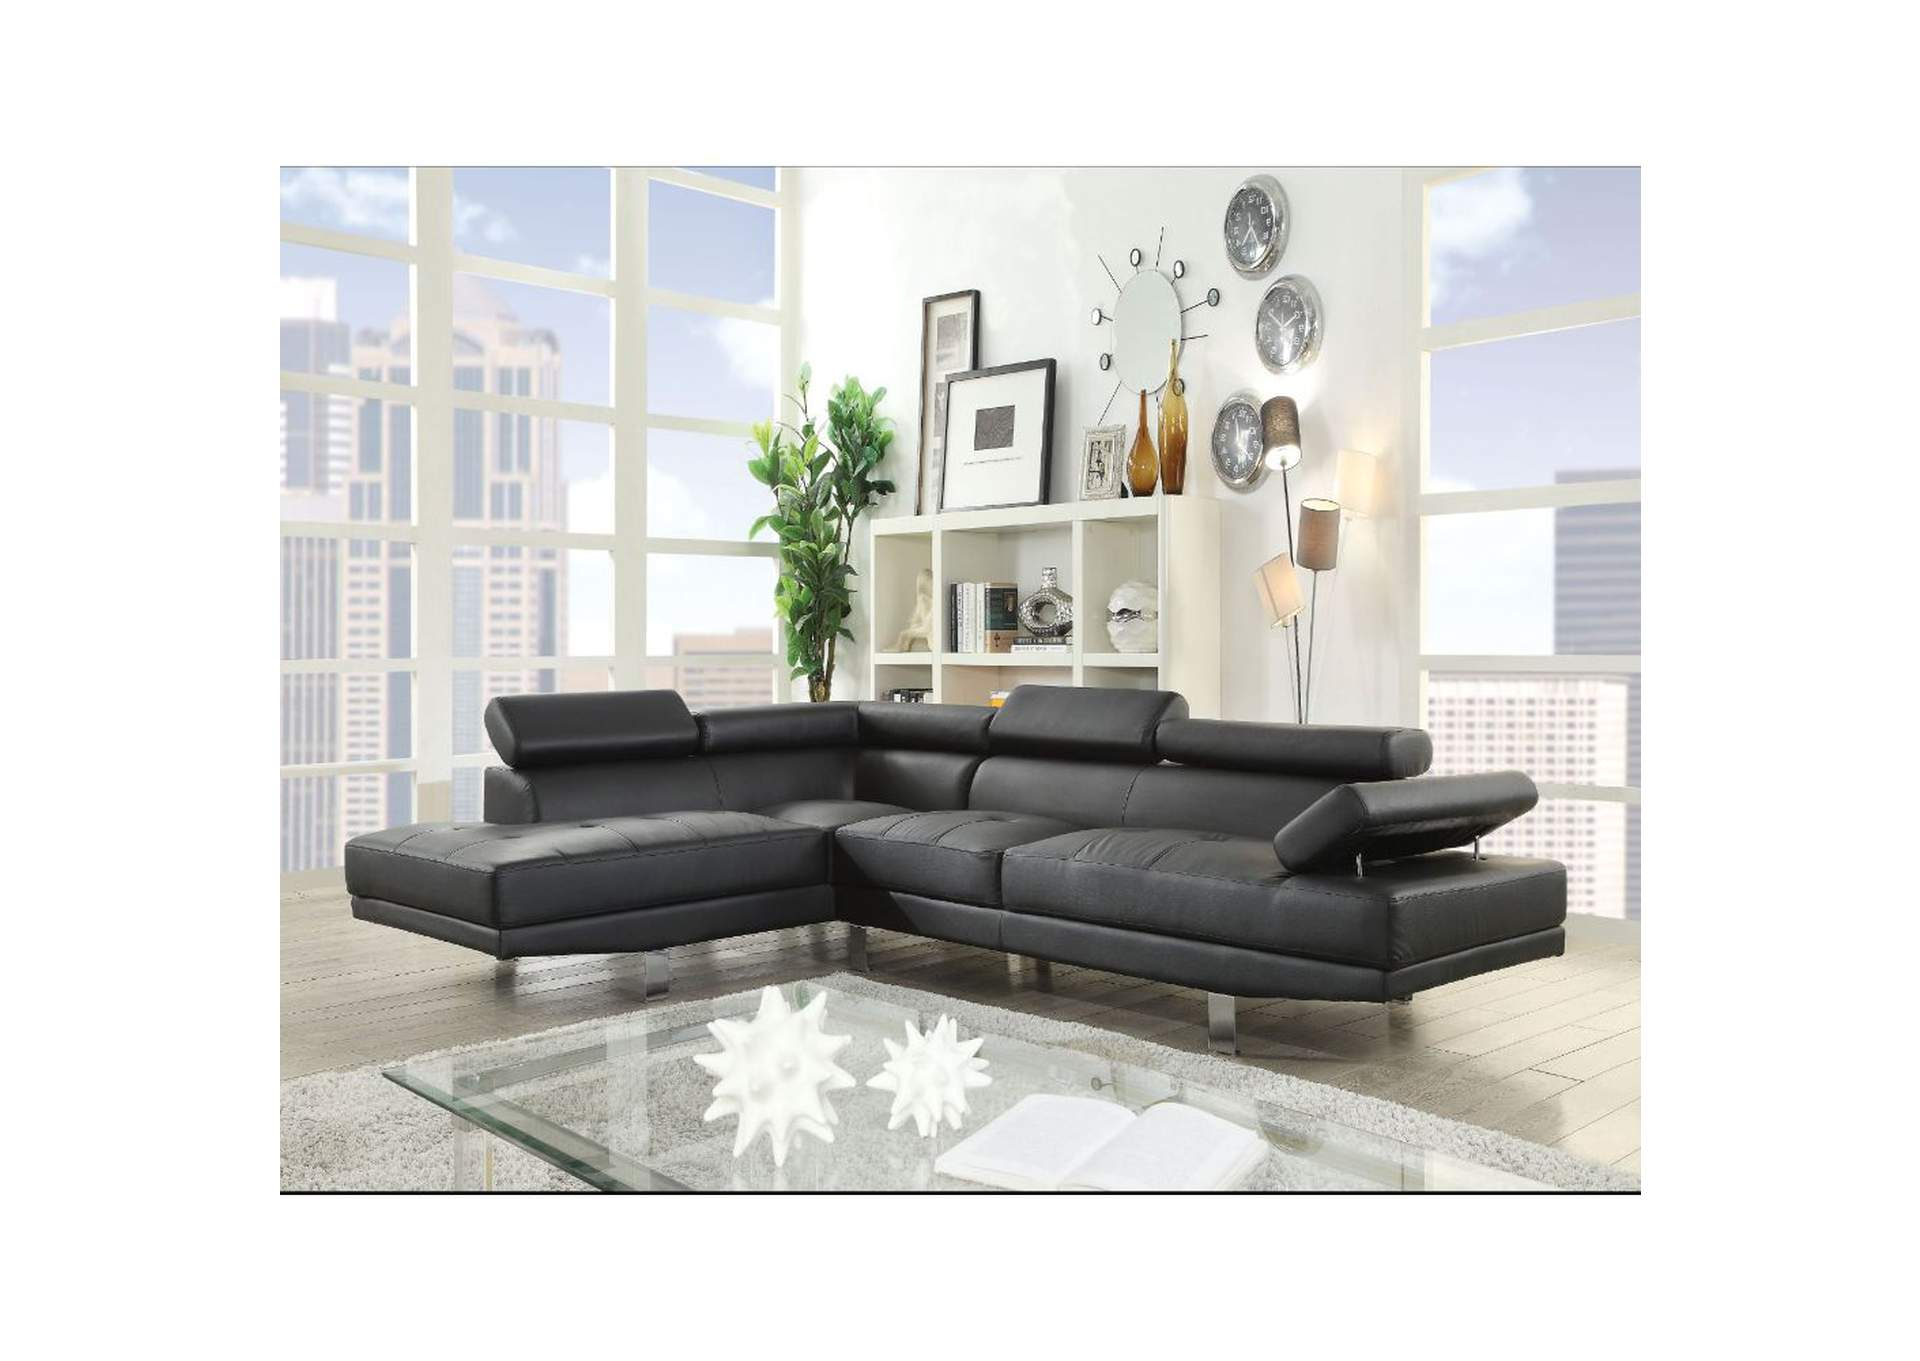 Connor Black PU Sectional Sofa,Acme